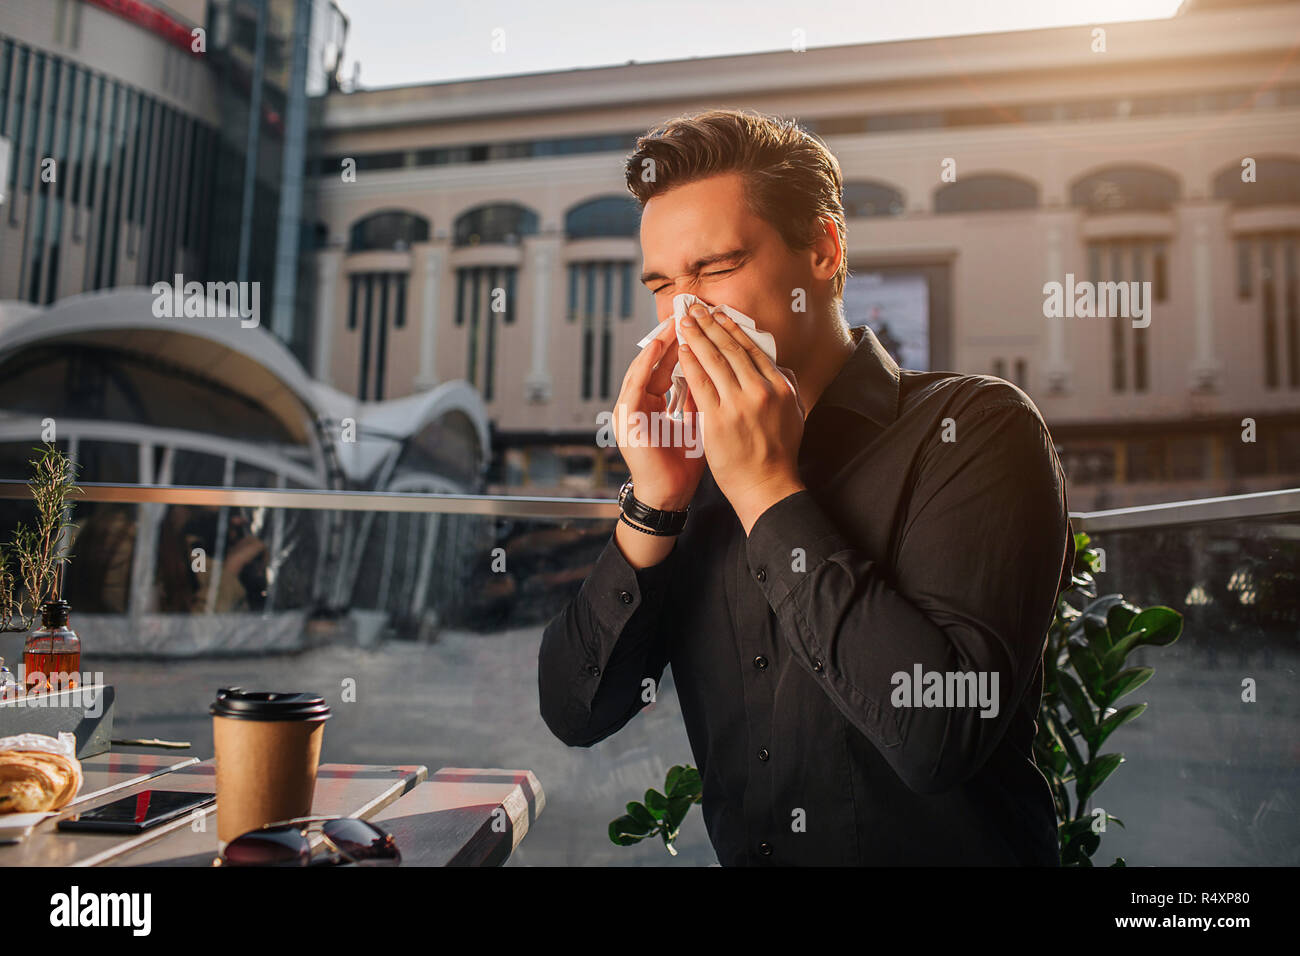 Sixk young man sit at table and sneezing in white napkin. He keeps eyes closed. Guy suffer. He sits outside. It is sunny. - Stock Image